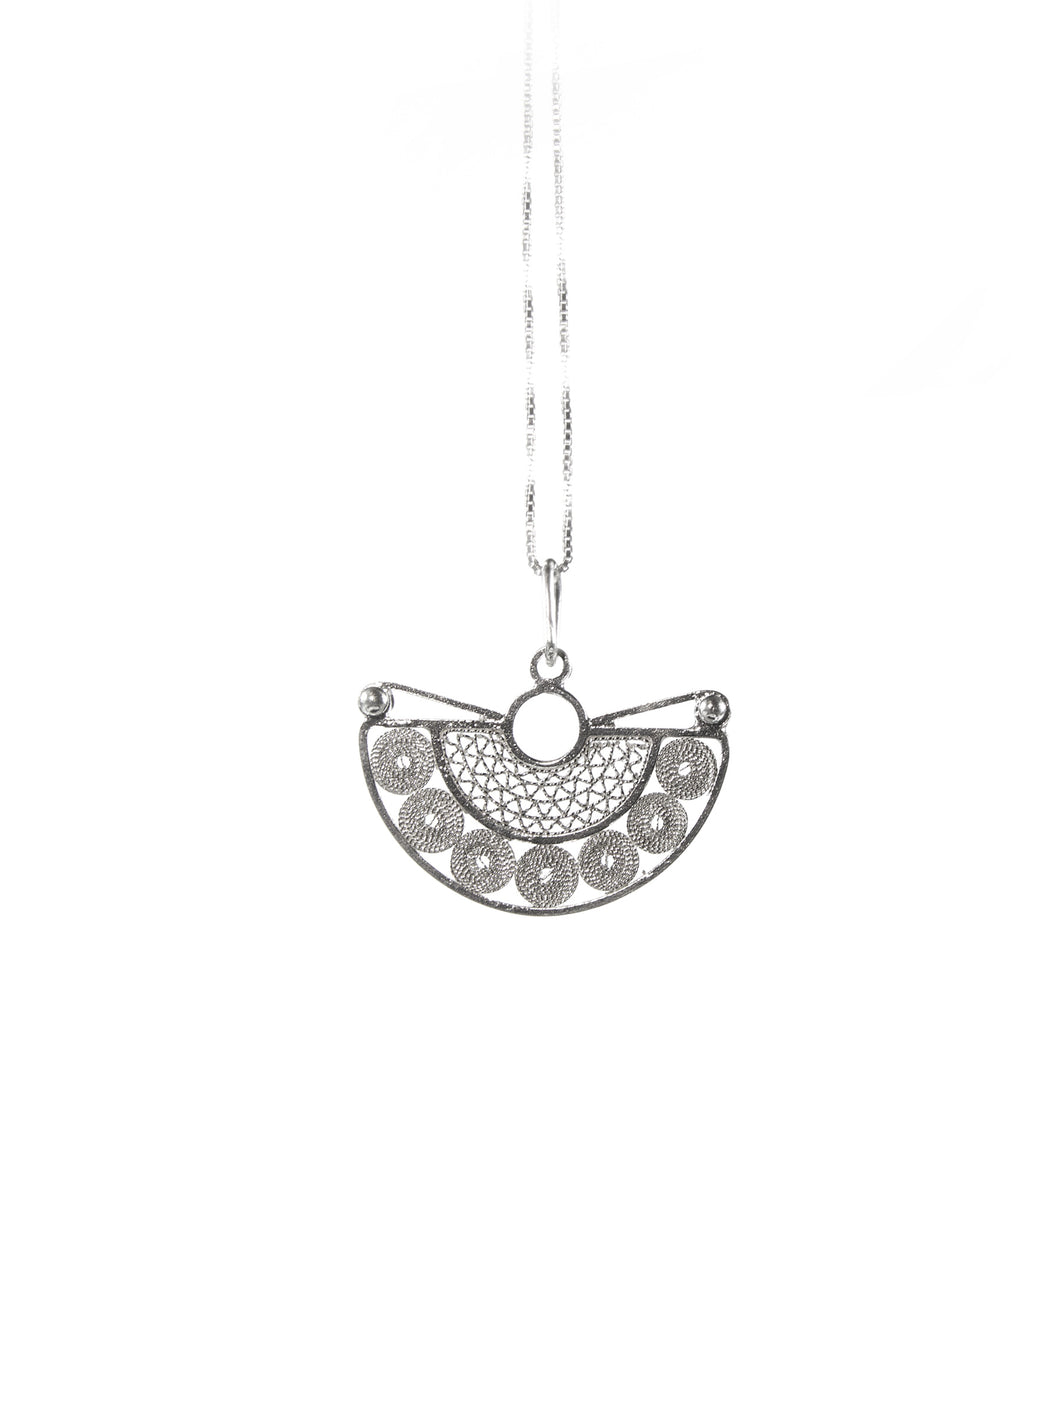 Half moon filigree pendant